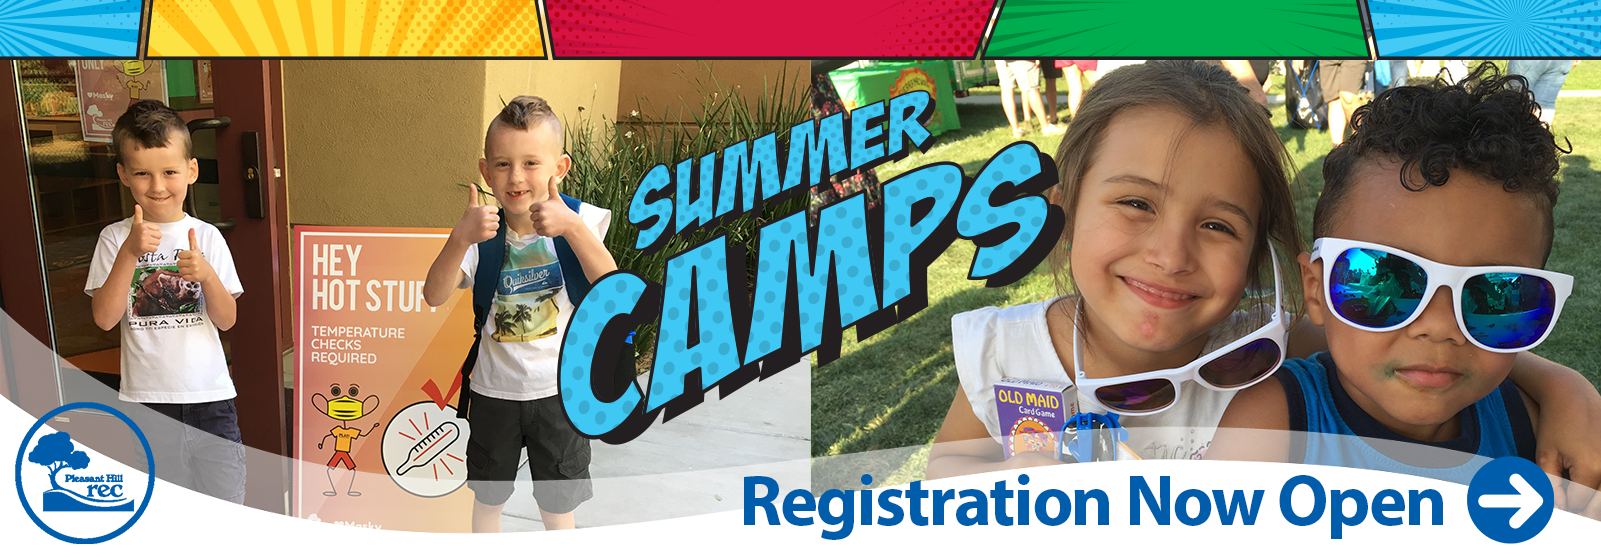 Summer Camp 2020 Banner Image